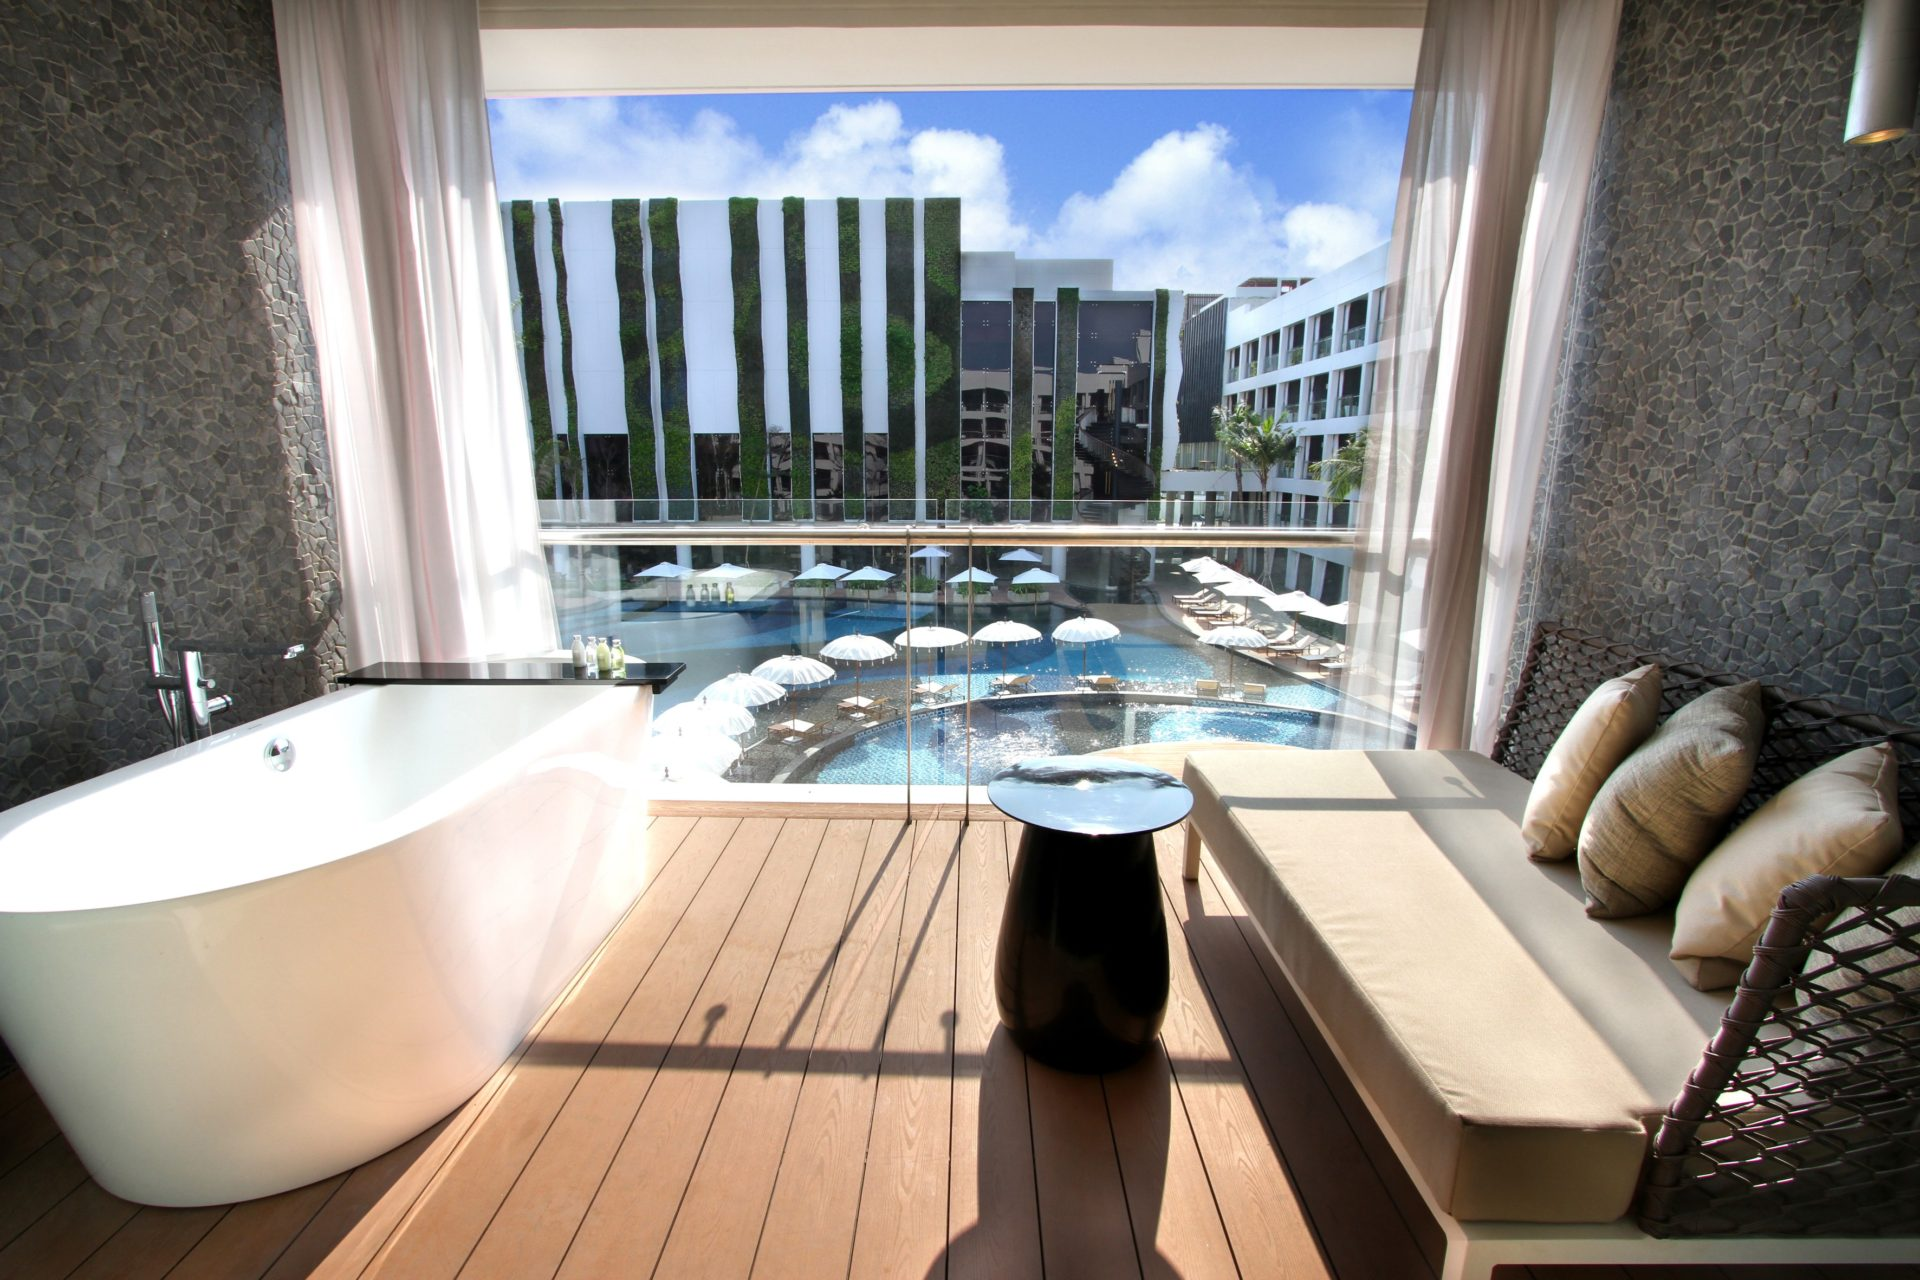 Deluxe Room Pool View 5 Star Hotel In Legian Bali The Stones Marriott Autograph Collection Hotel